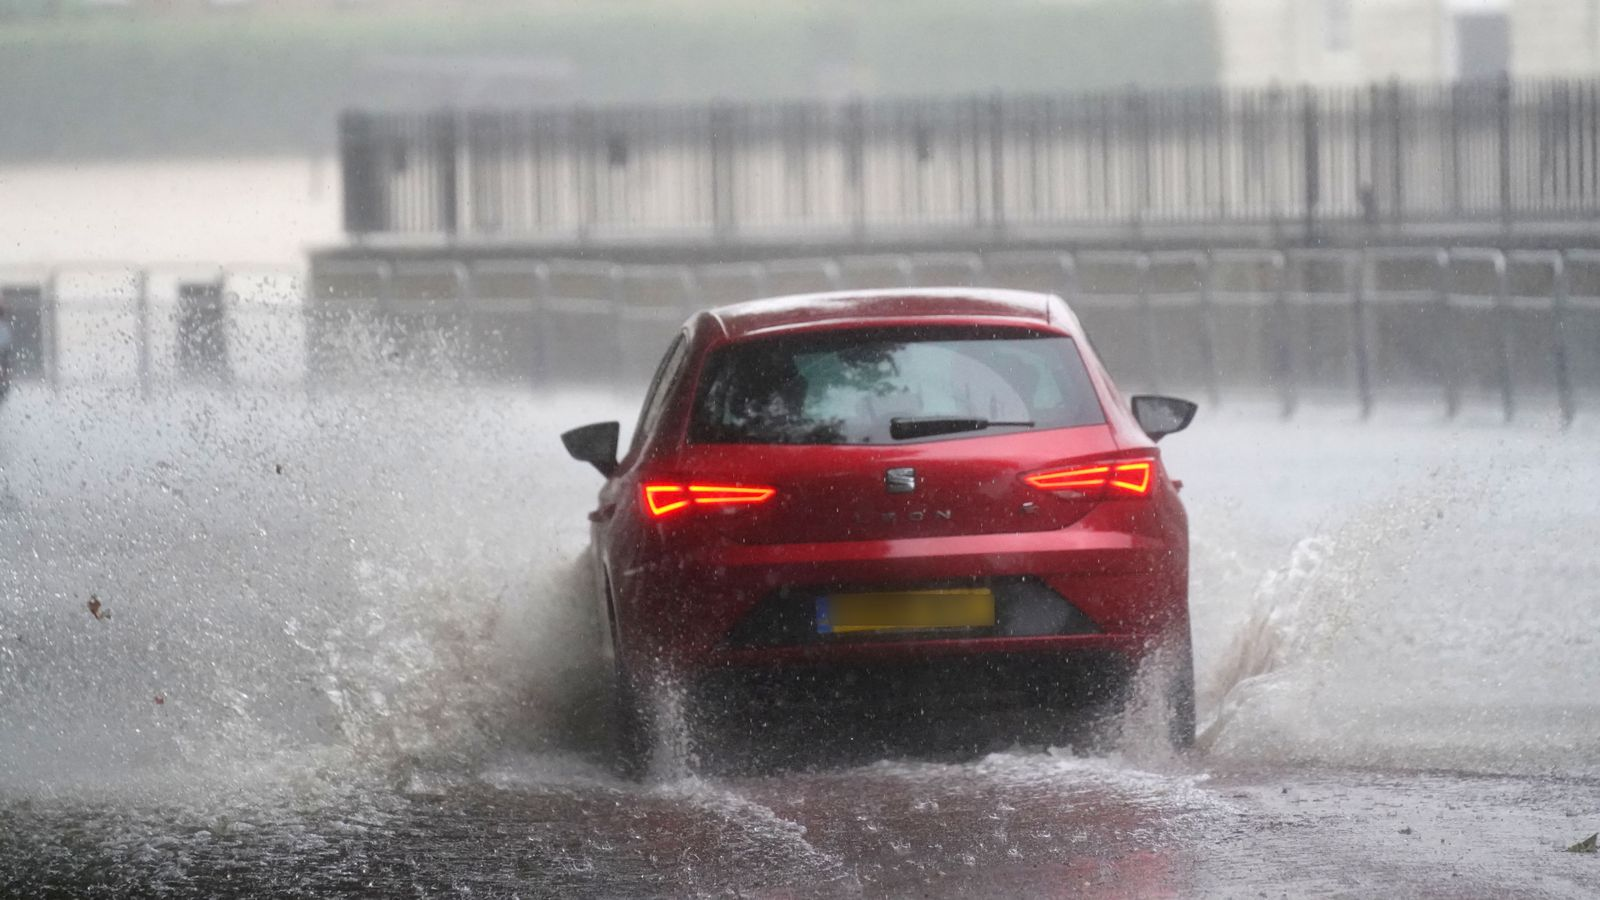 UK weather: Met Office warns of life-threatening floods as month's worth of rain set to fall in 24 hours